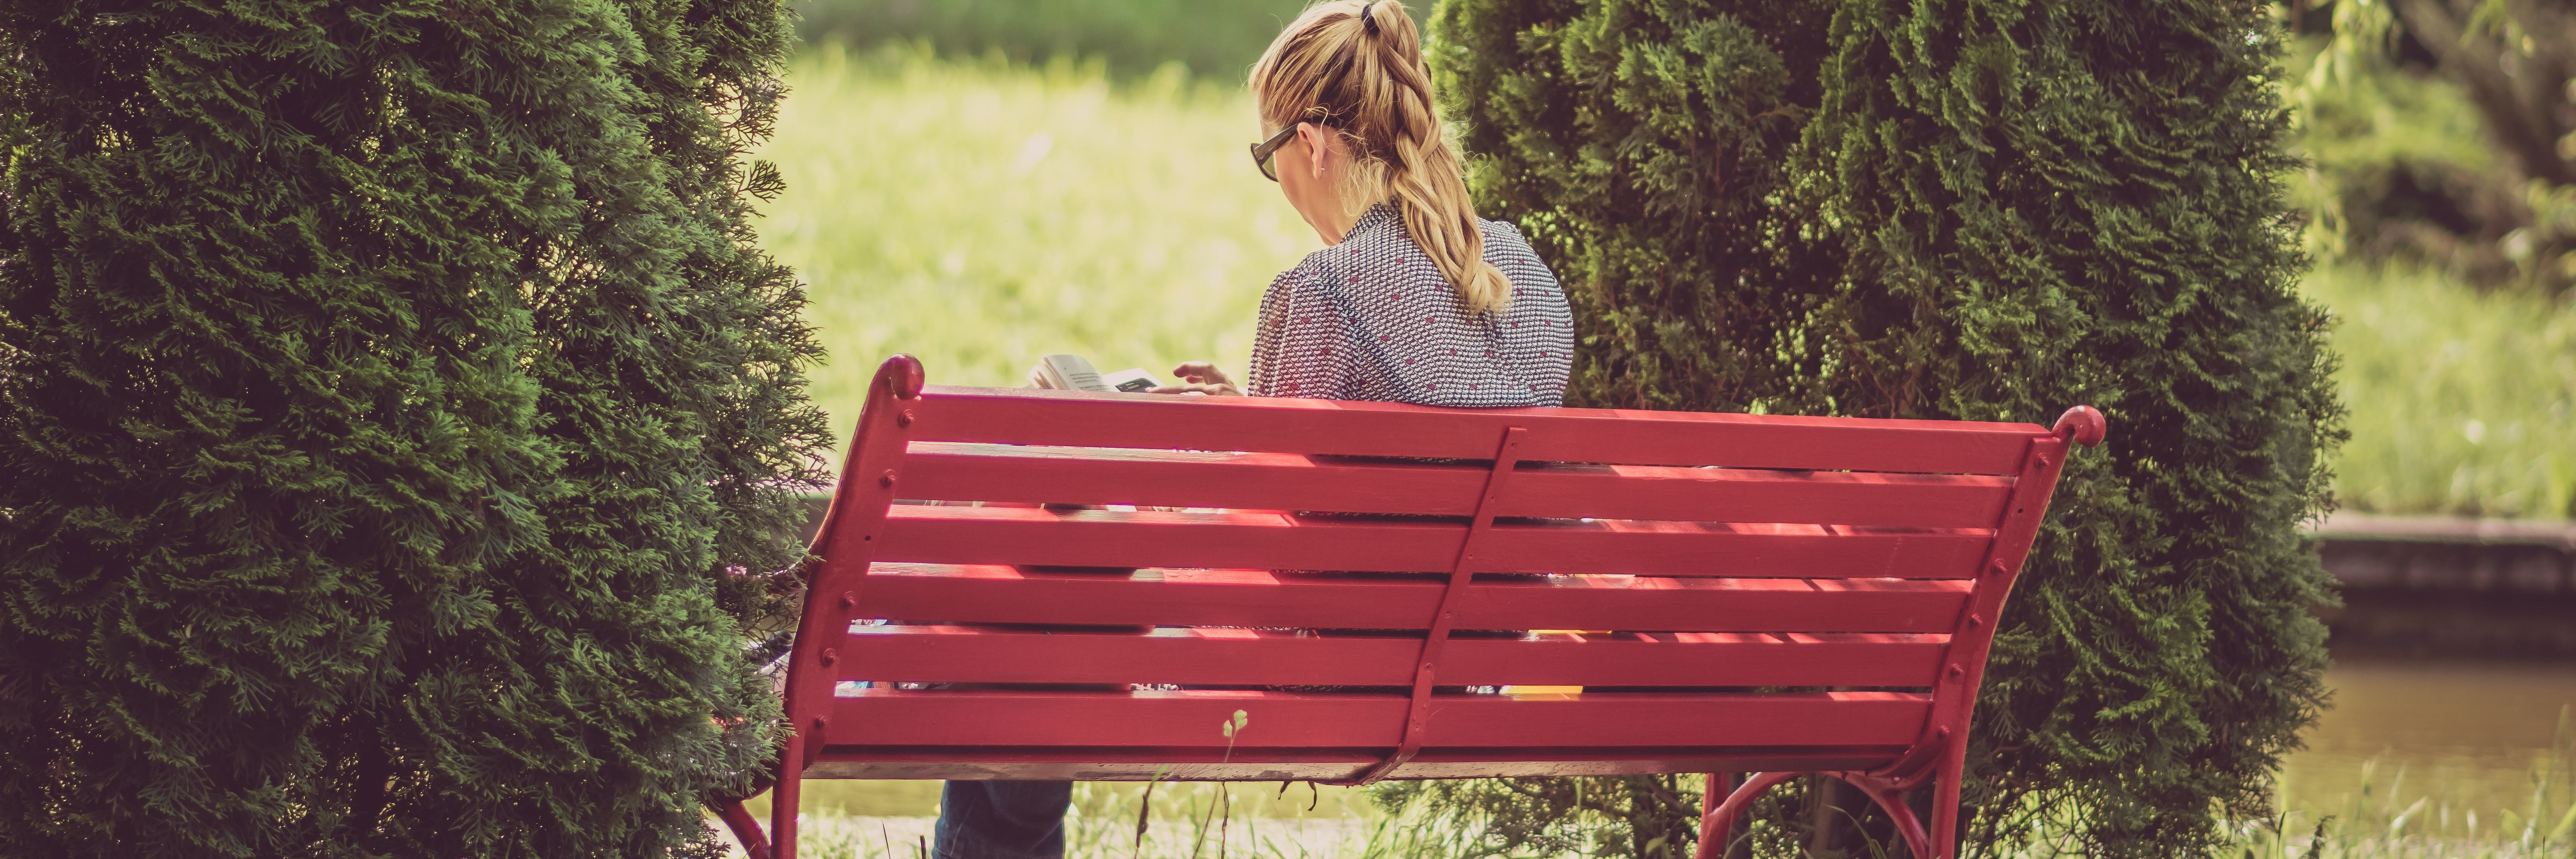 Questions to ask your doctor about mental illness for Gardening questionnaire